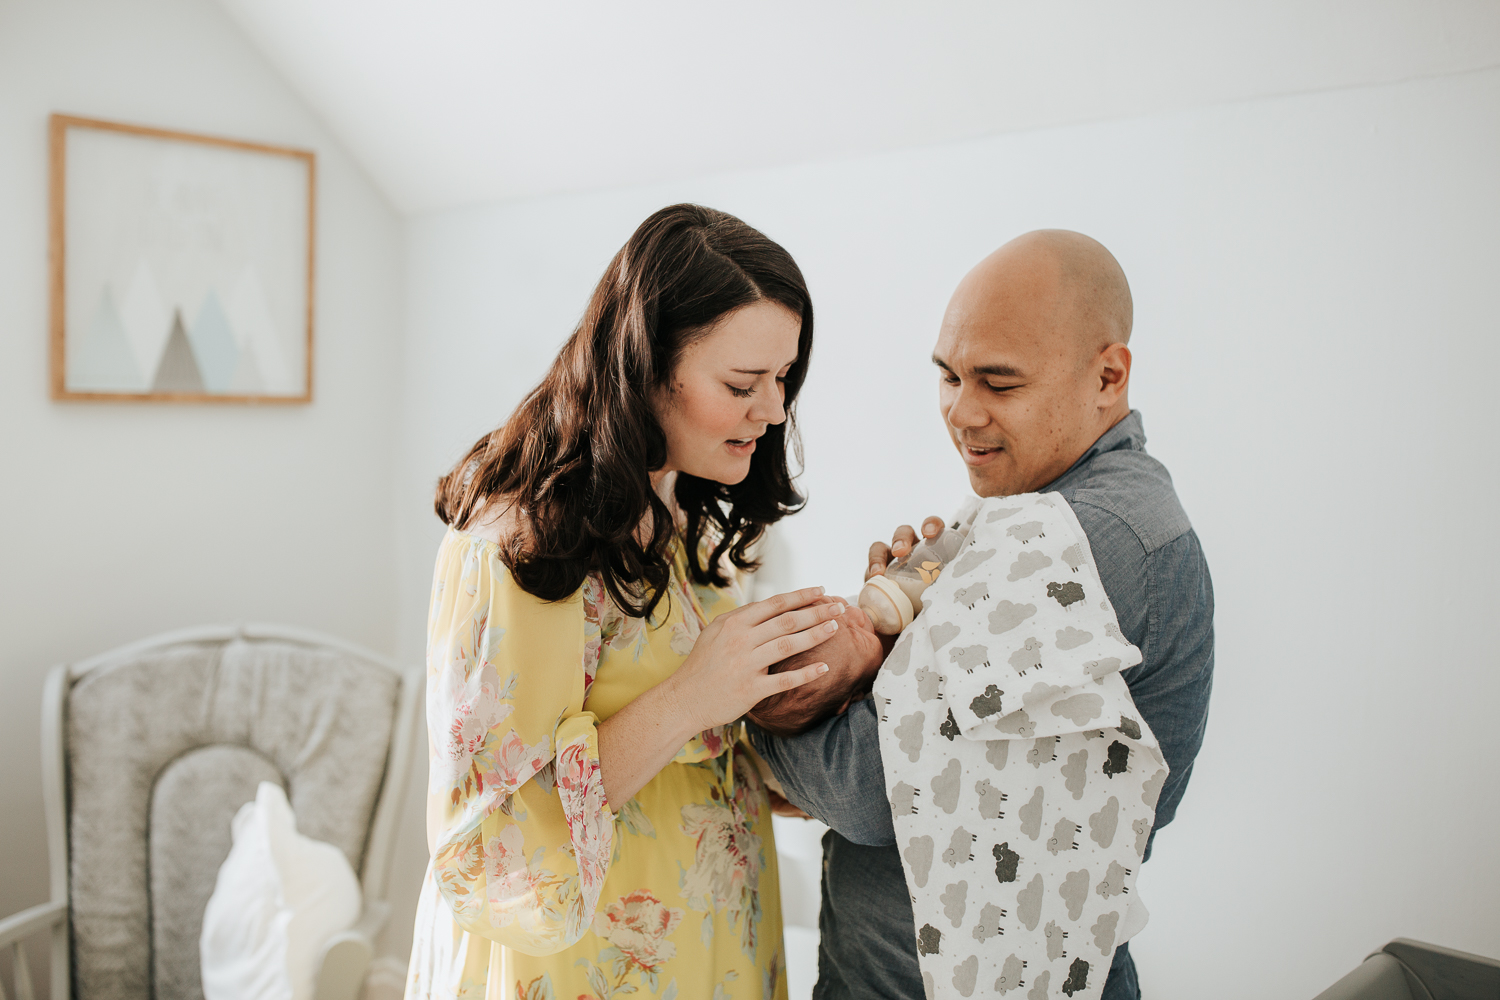 new parents standing in nursery, dad feeding 3 week old baby boy a bottle as mom stands next to them, hand on son's head - Newmarket Lifestyle Photography